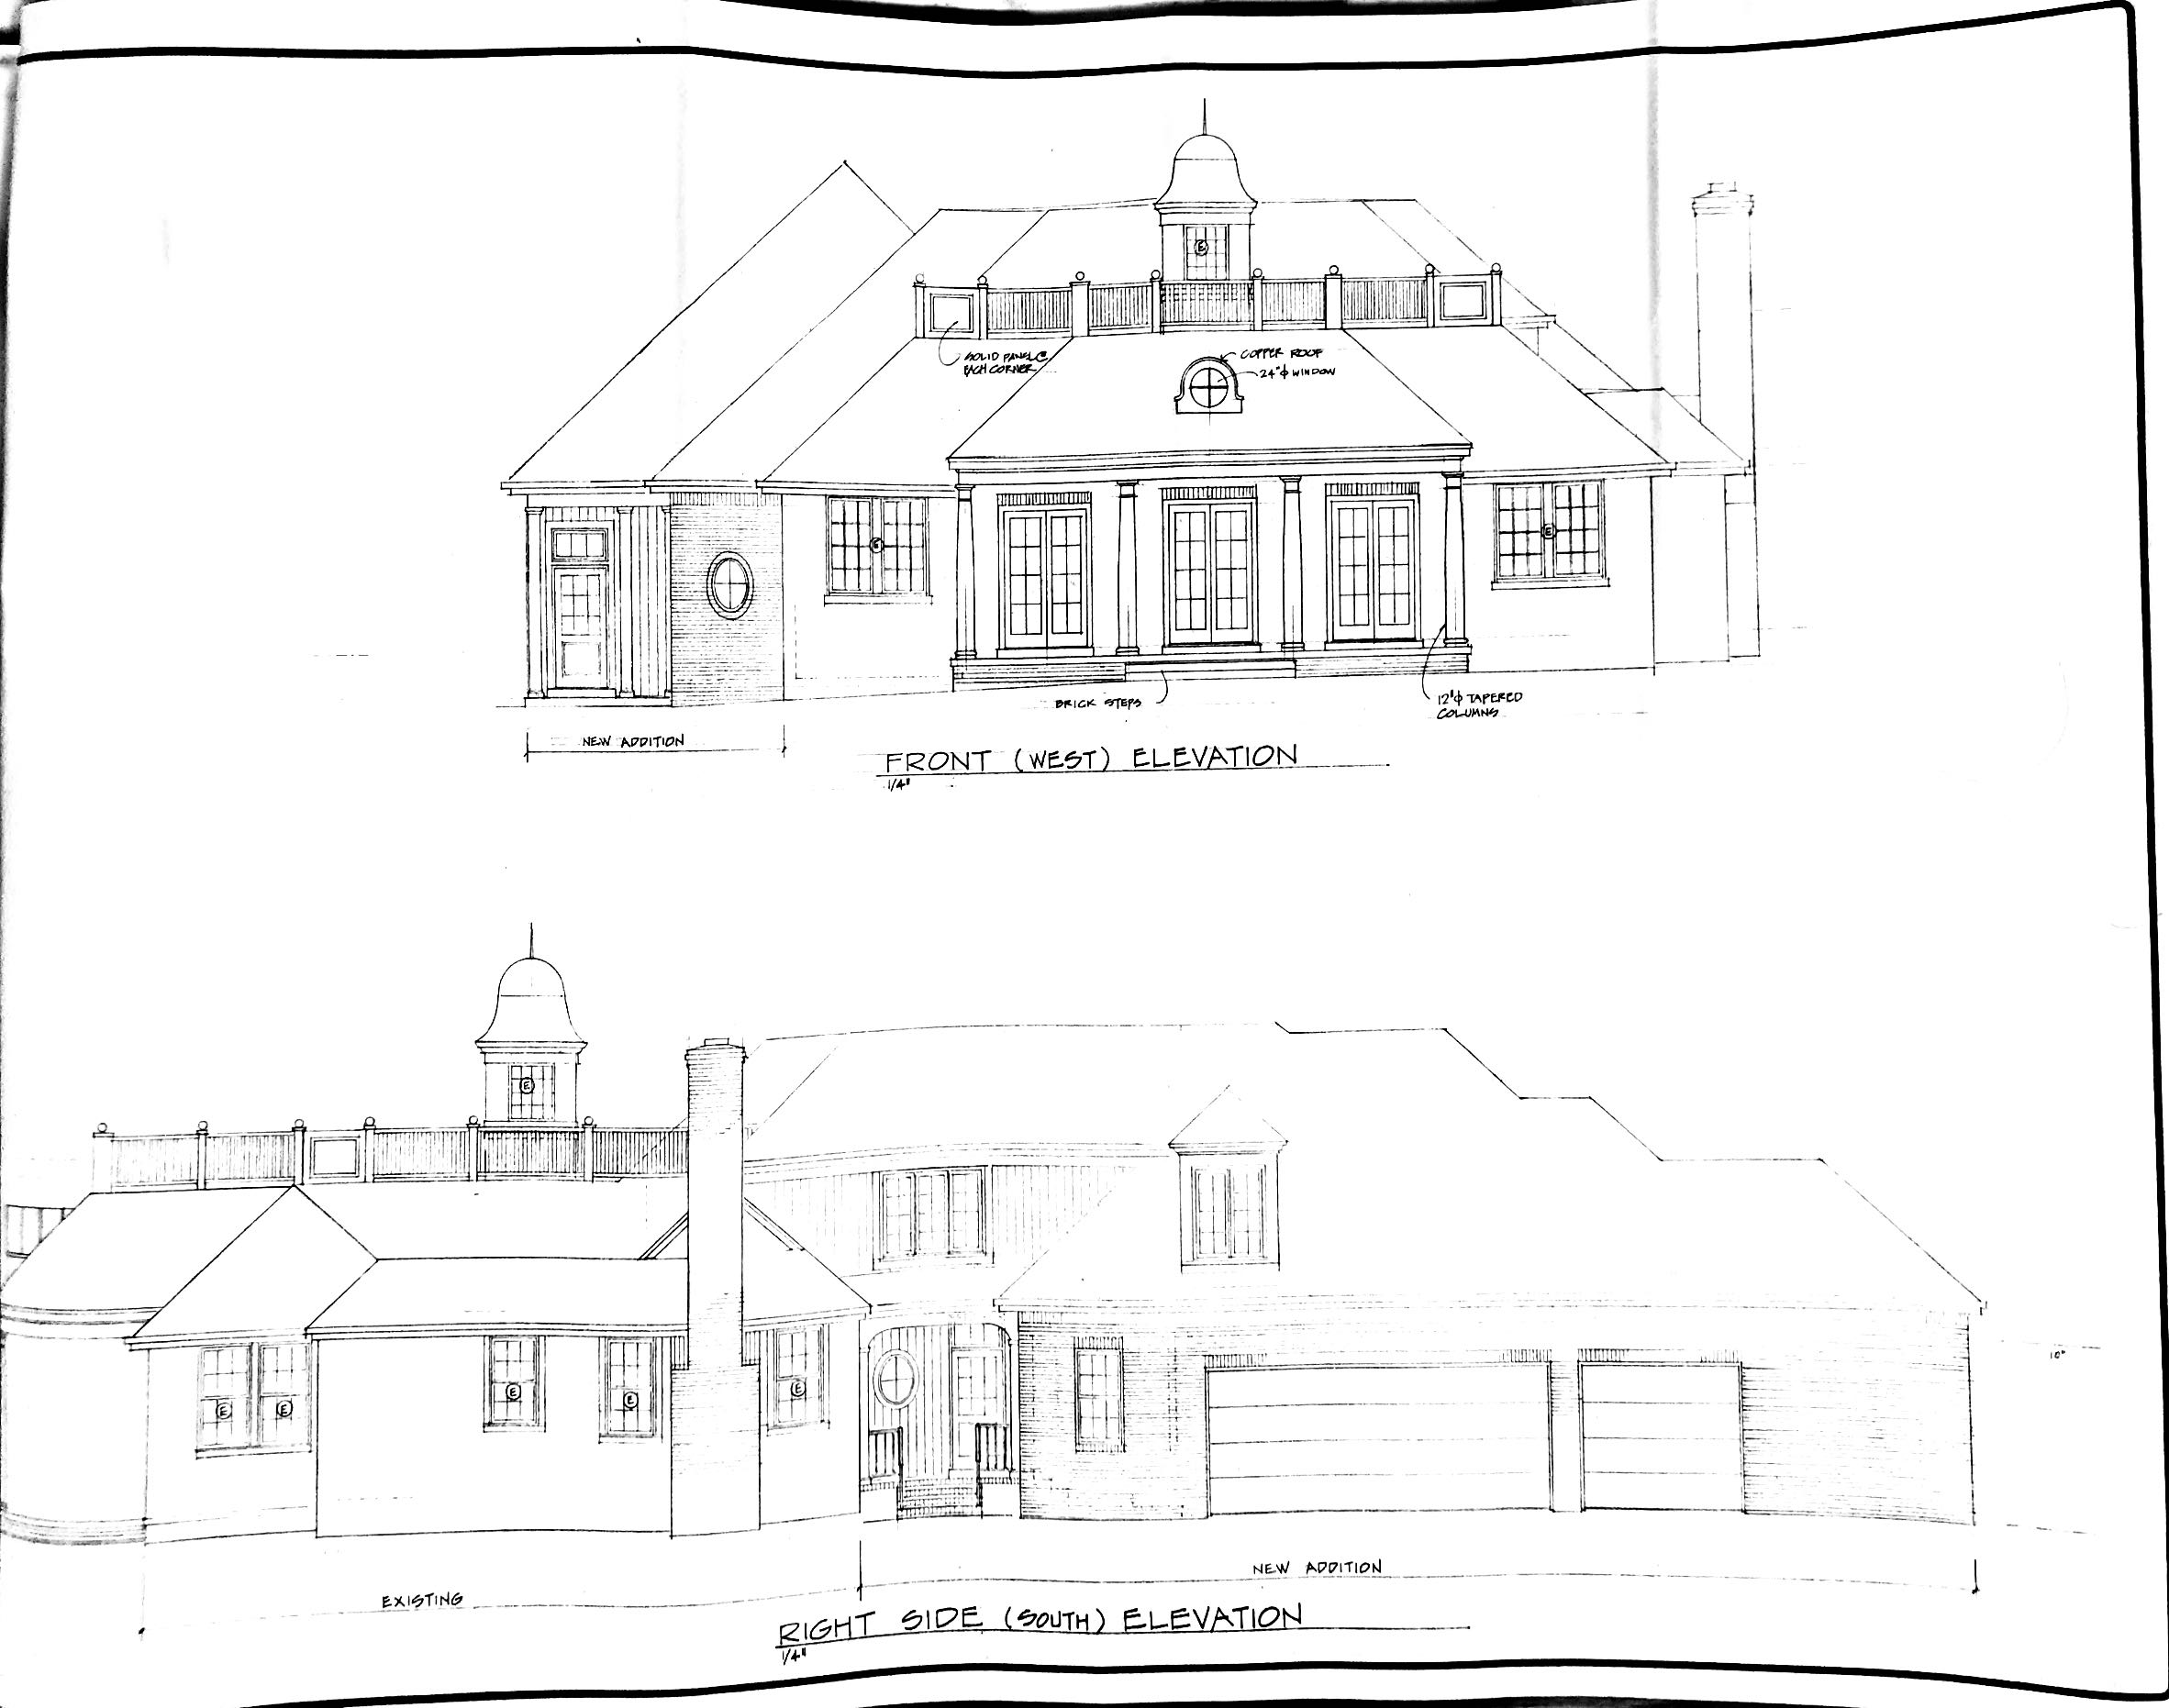 House Plans - Designed to nurture love and laughter with unique details to make daily life more fun and functional for the whole family.Architect: Charles ShippContractor: Matt Olson